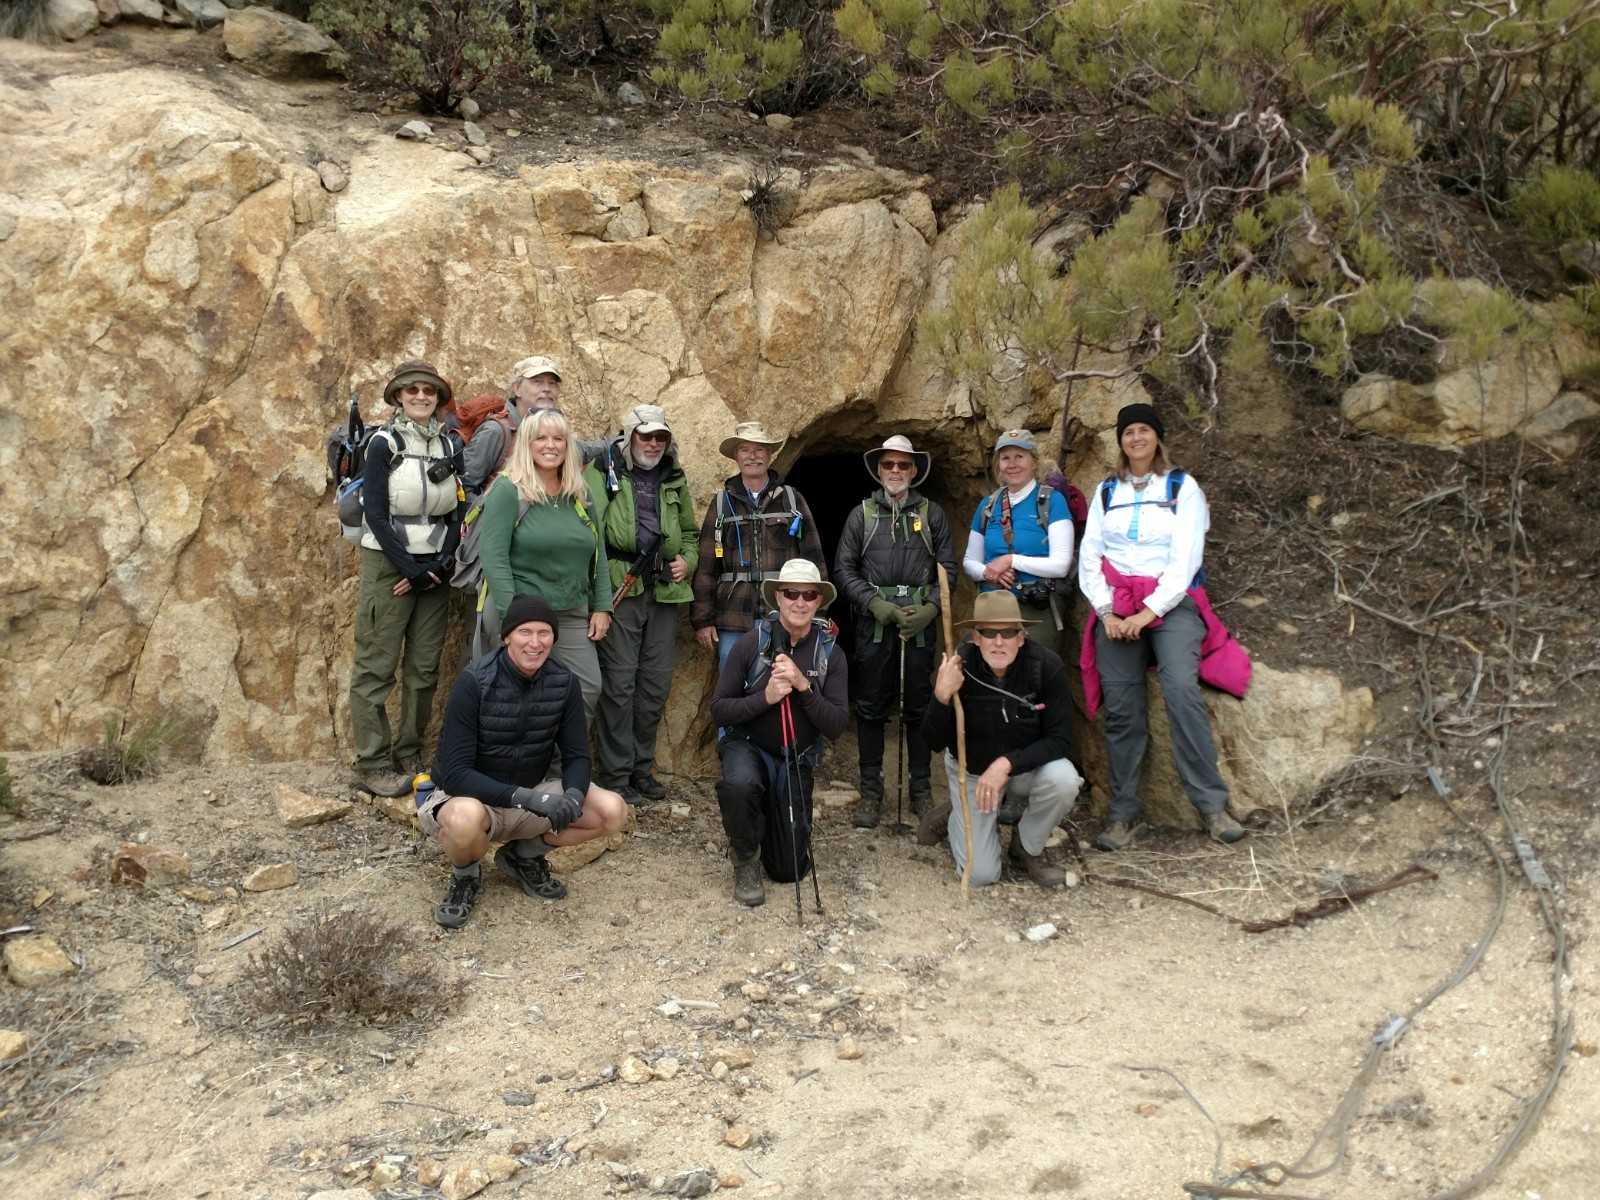 Here we are at the end of the trail.